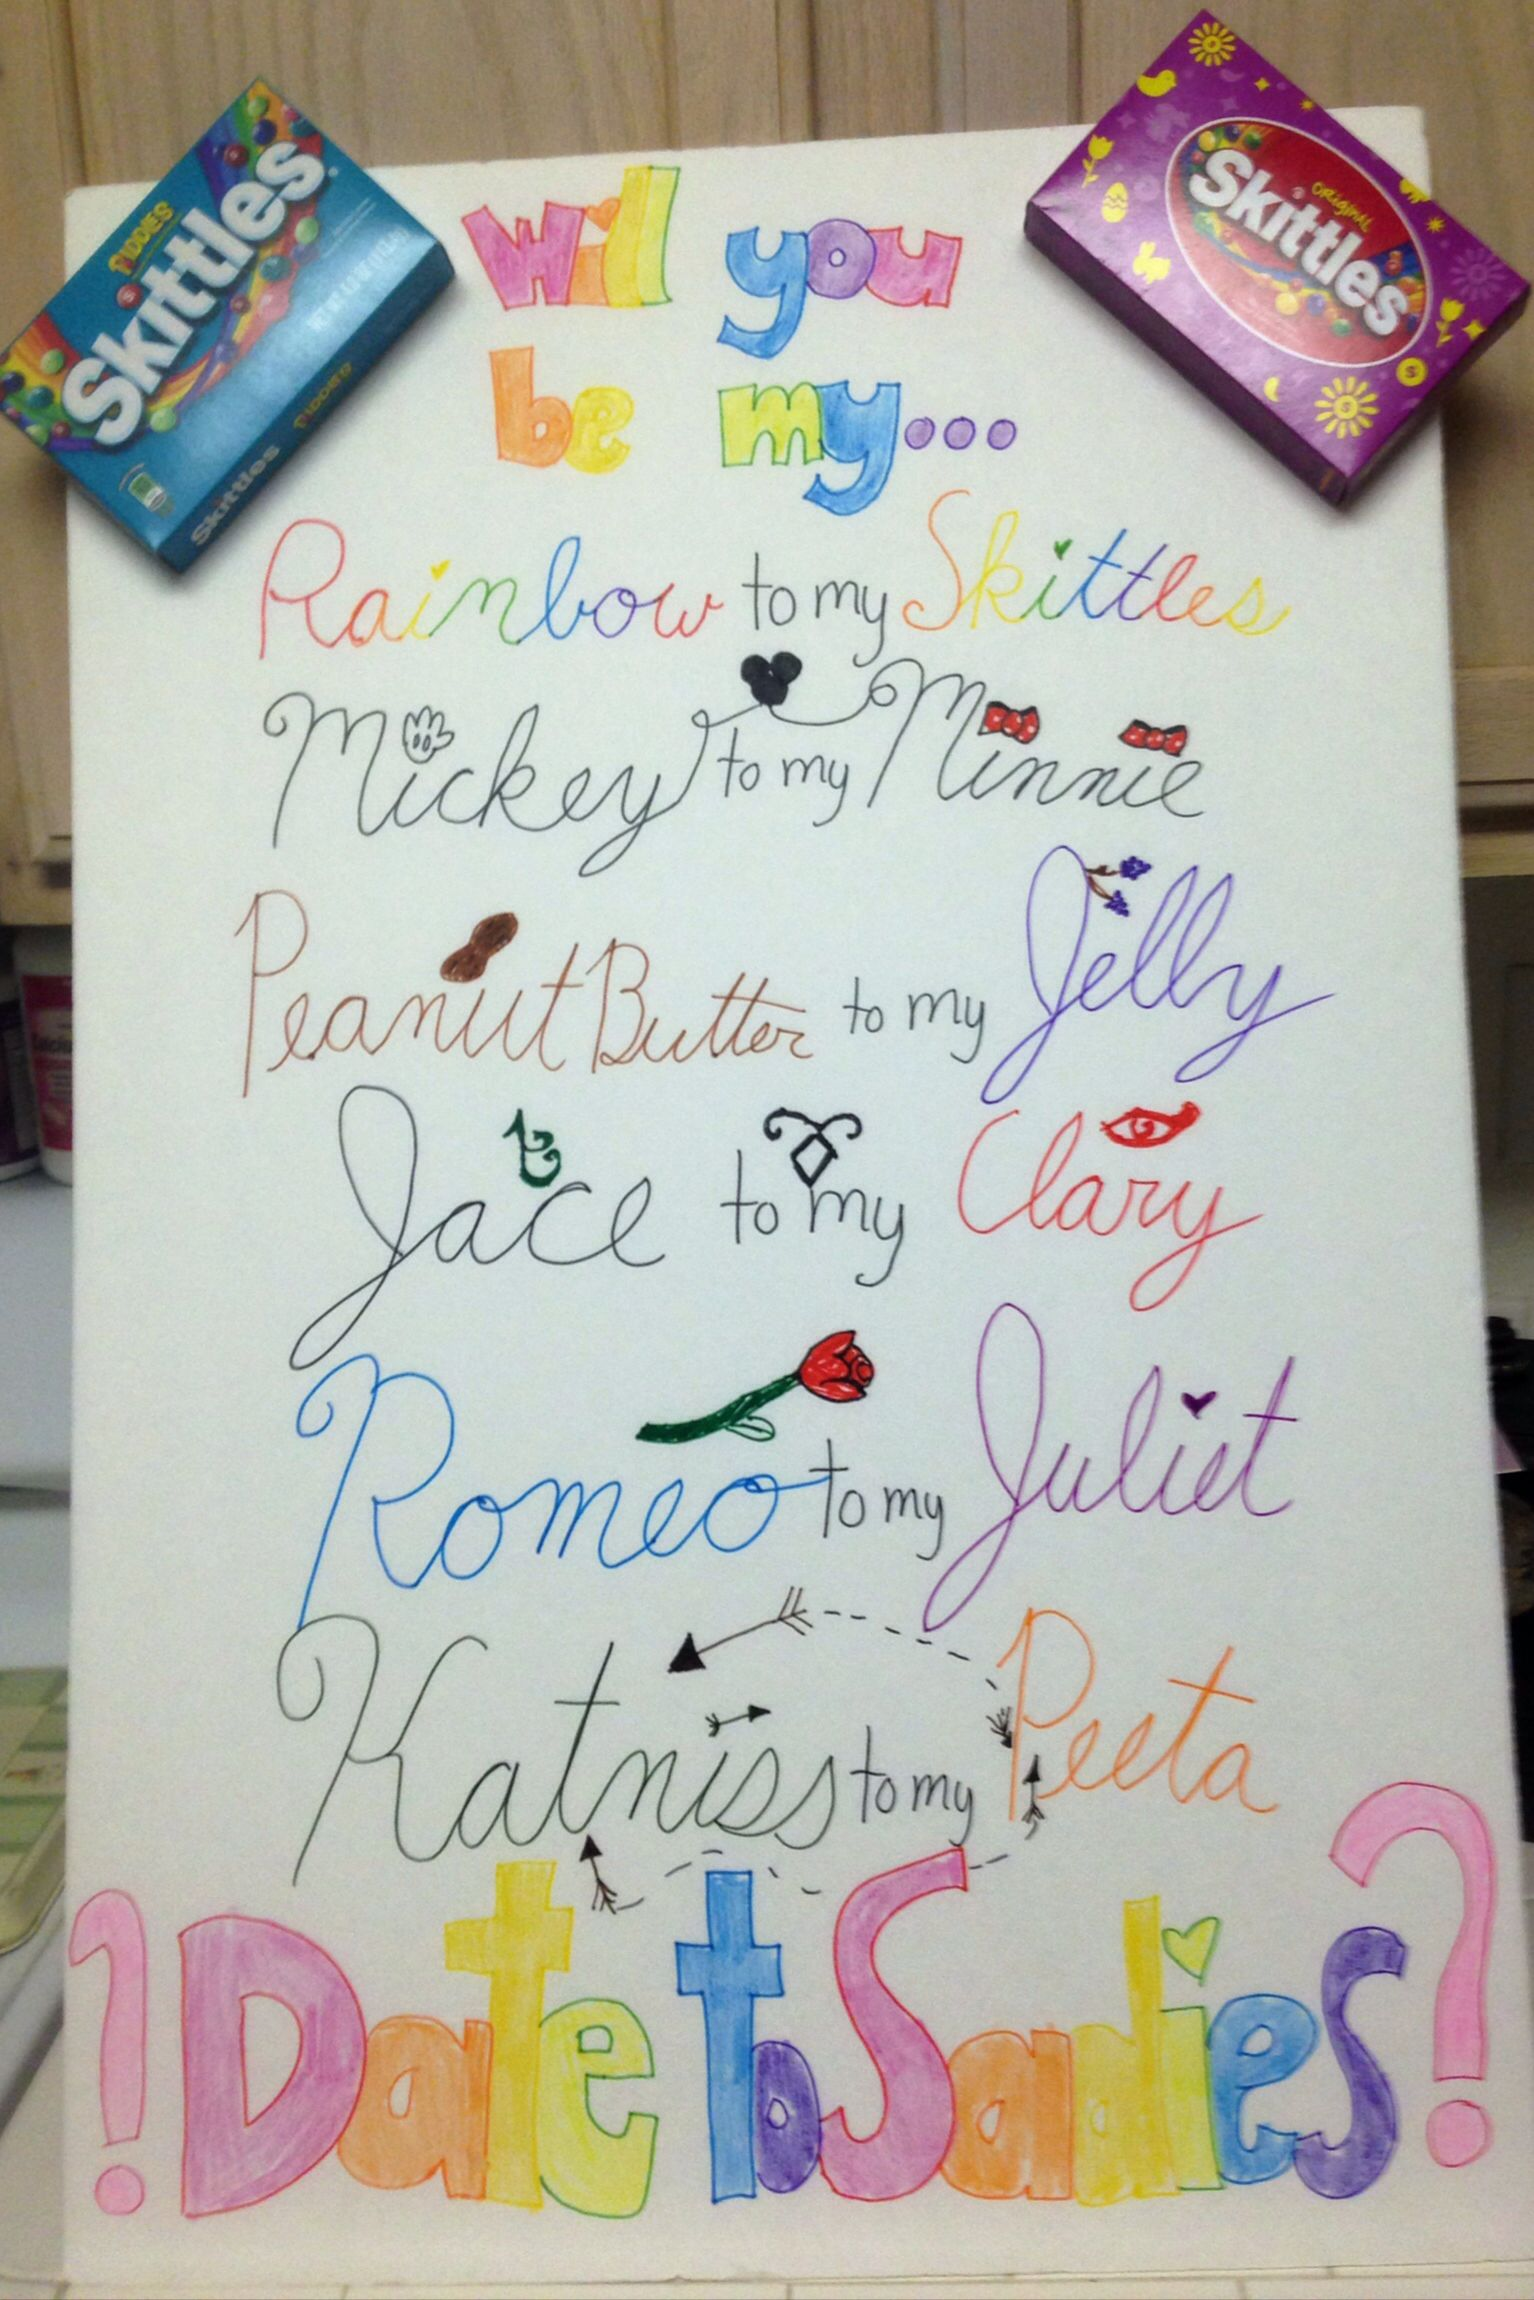 Cute ideas to ask a boy to sadie hawkins - I Made This Poster To Ask My Boyfriend To Sadie S He Thought That